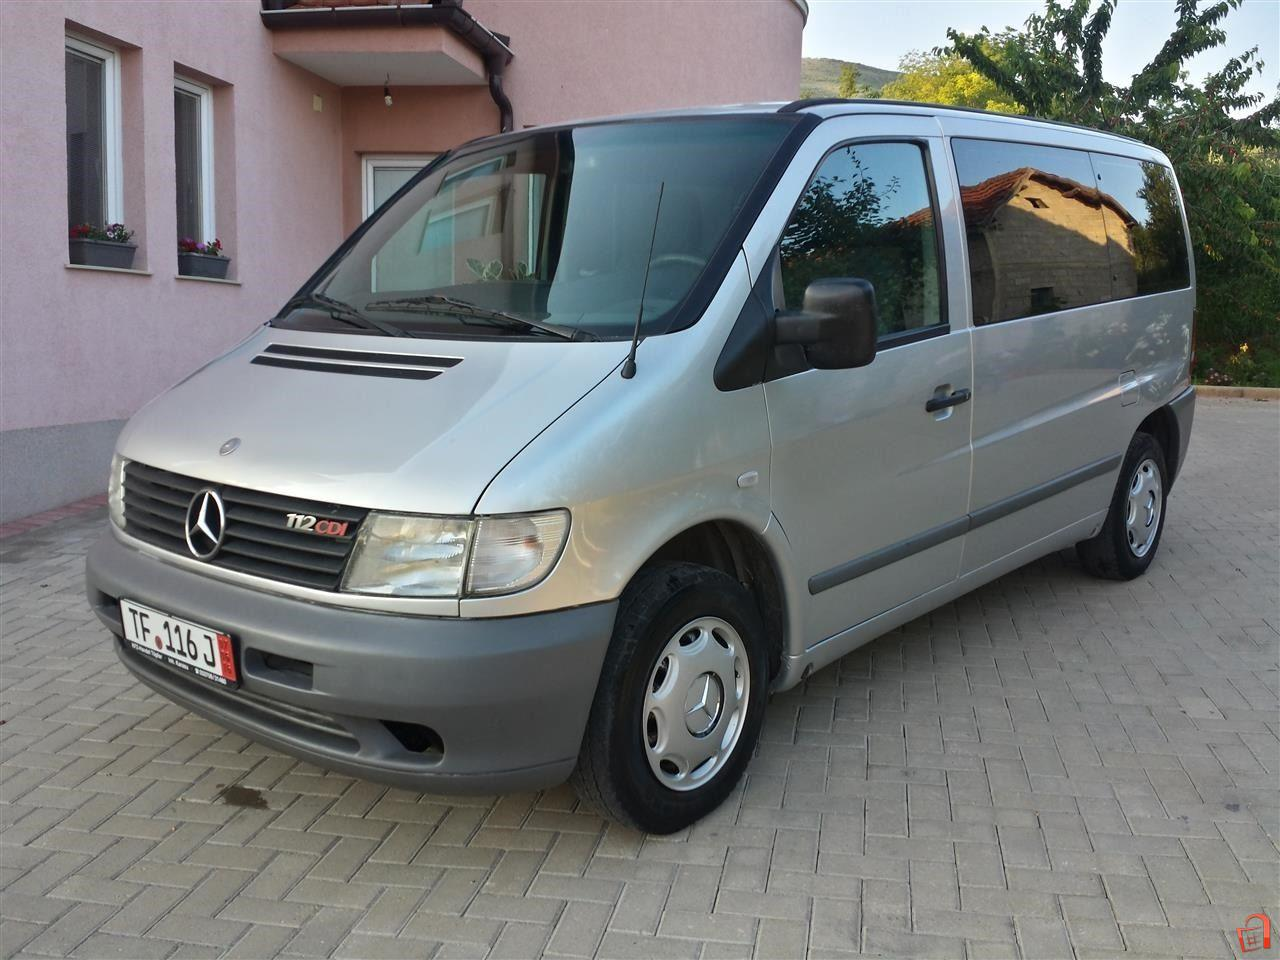 ad mercedes vito 112 cdi klima tempomat for sale skopje skopje vehicles heavy. Black Bedroom Furniture Sets. Home Design Ideas